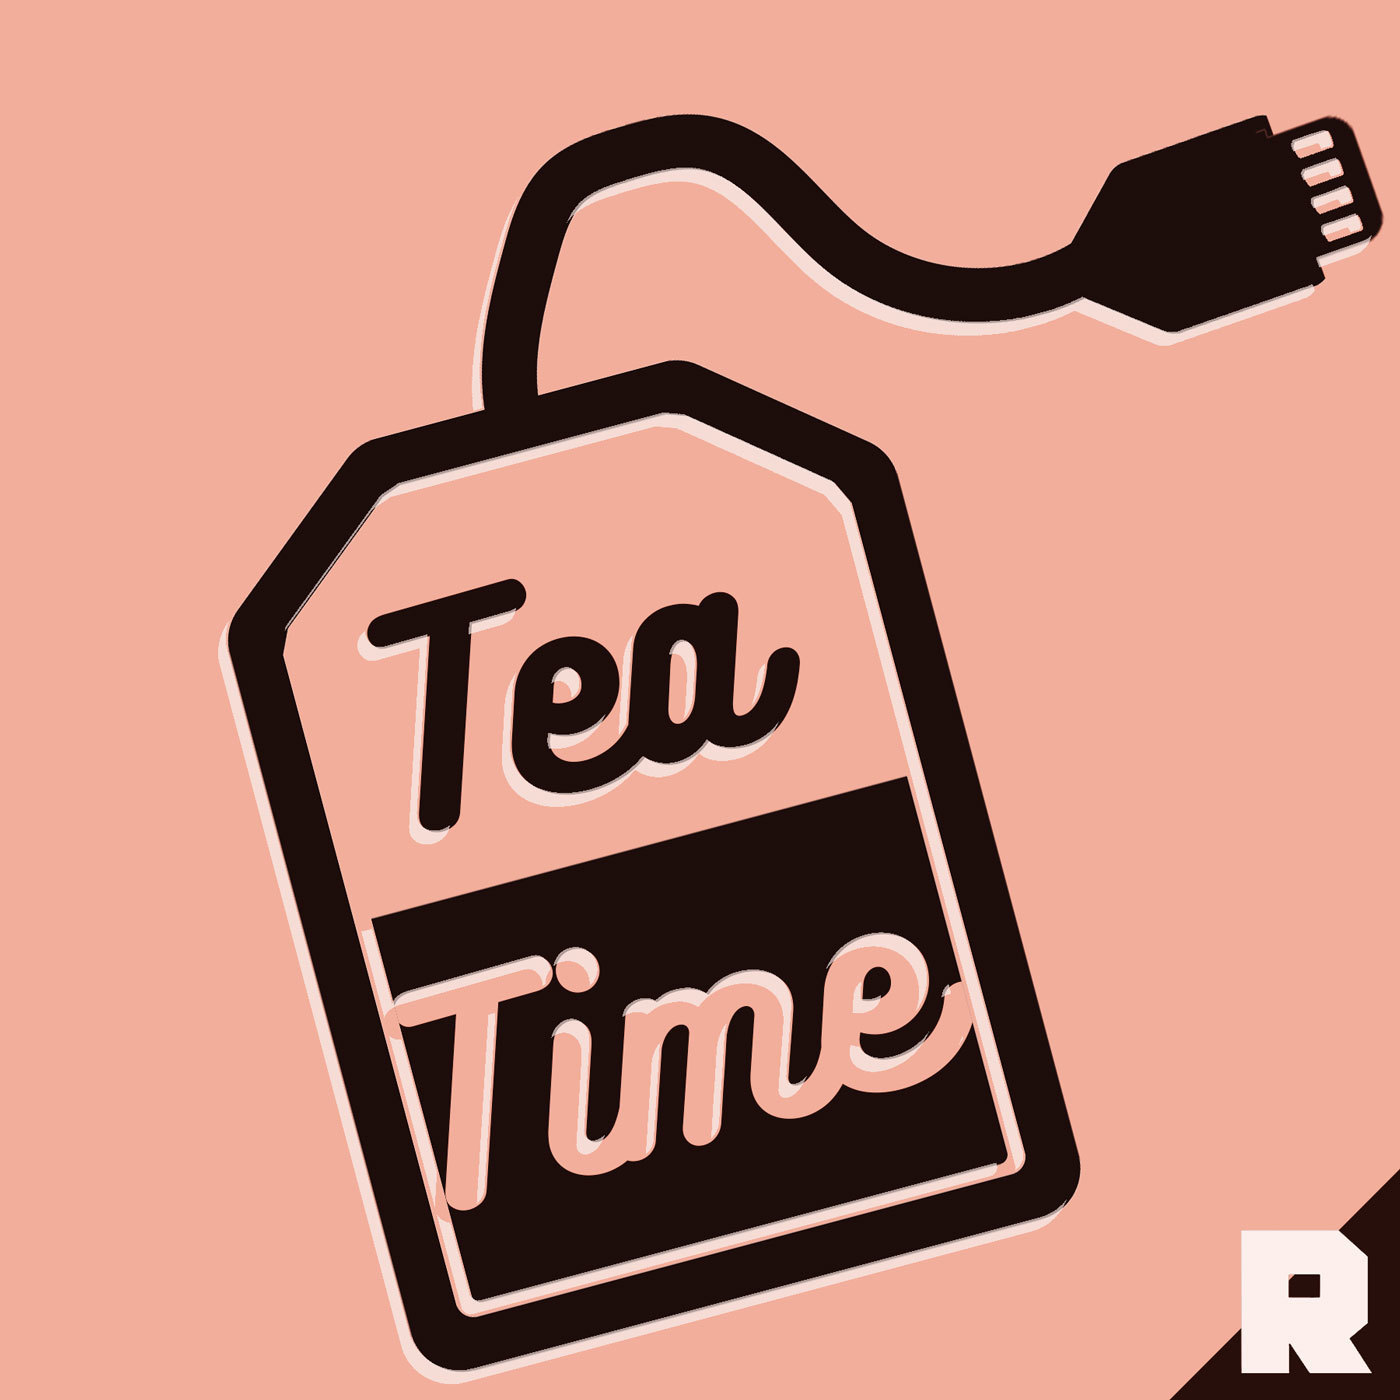 A Non-Football Fan's Guide to Caring About the Super Bowl | Tea Time (Ep. 568)